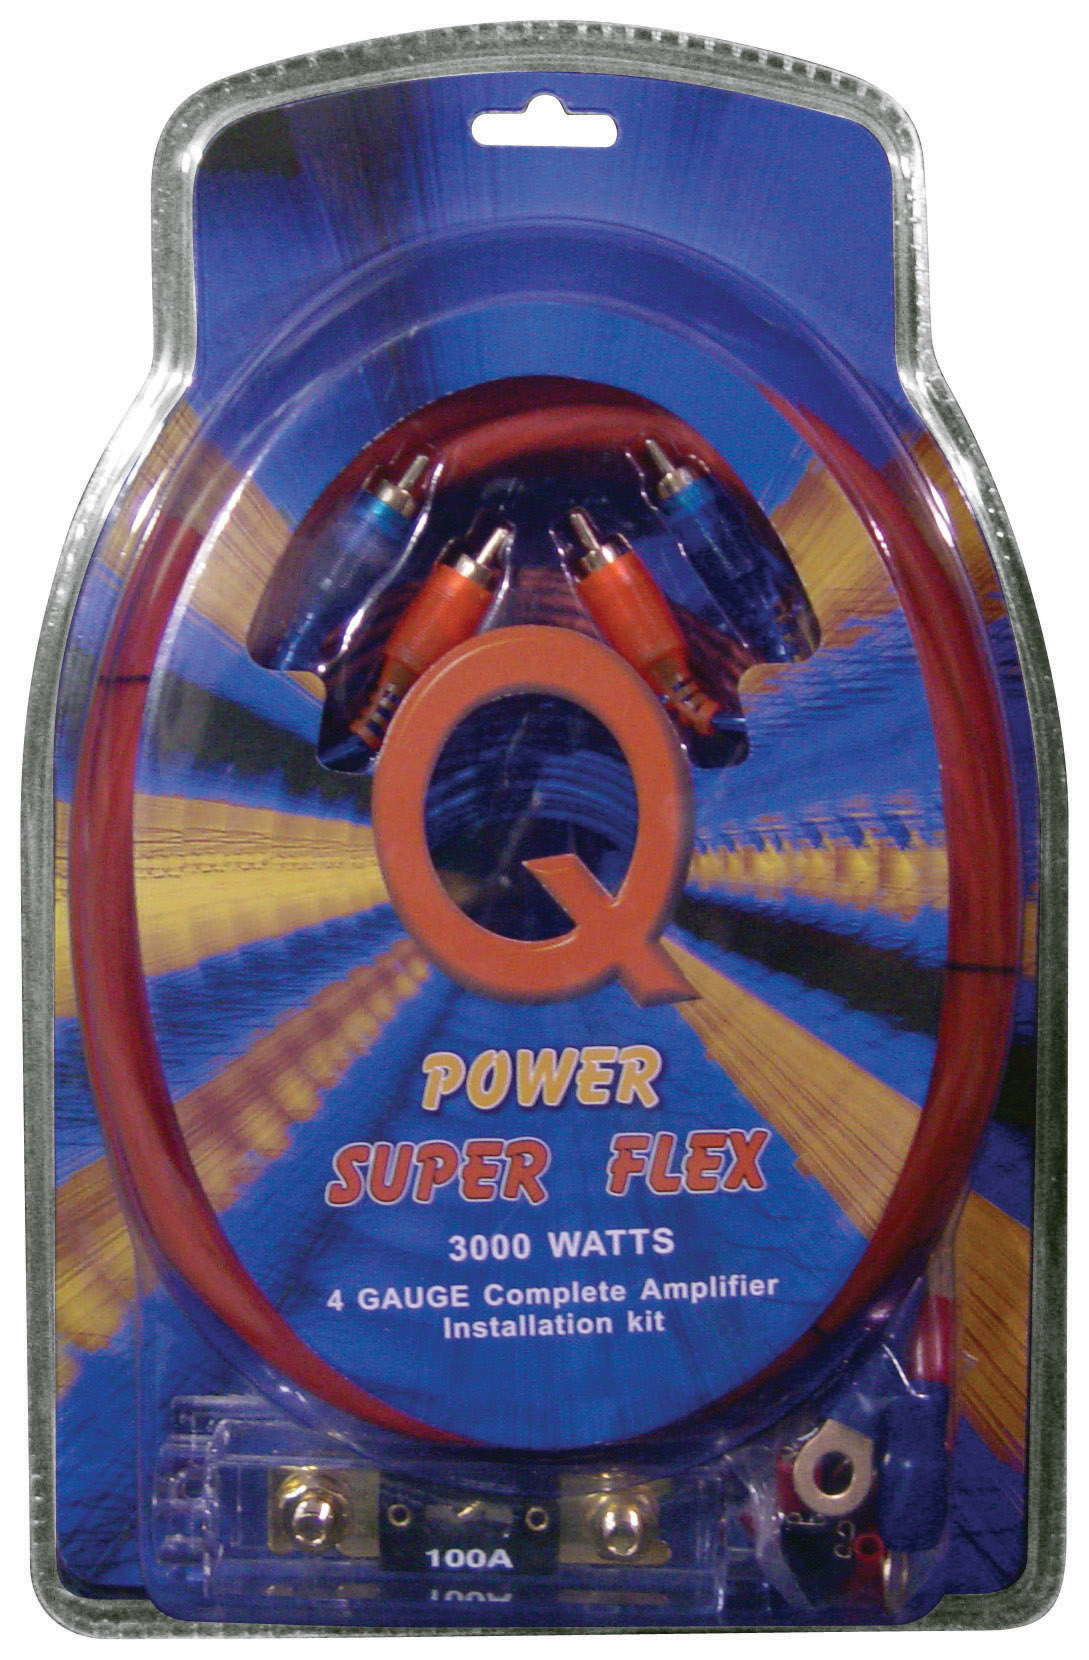 Qpower 4 Gauge Amp Kit Super Flex